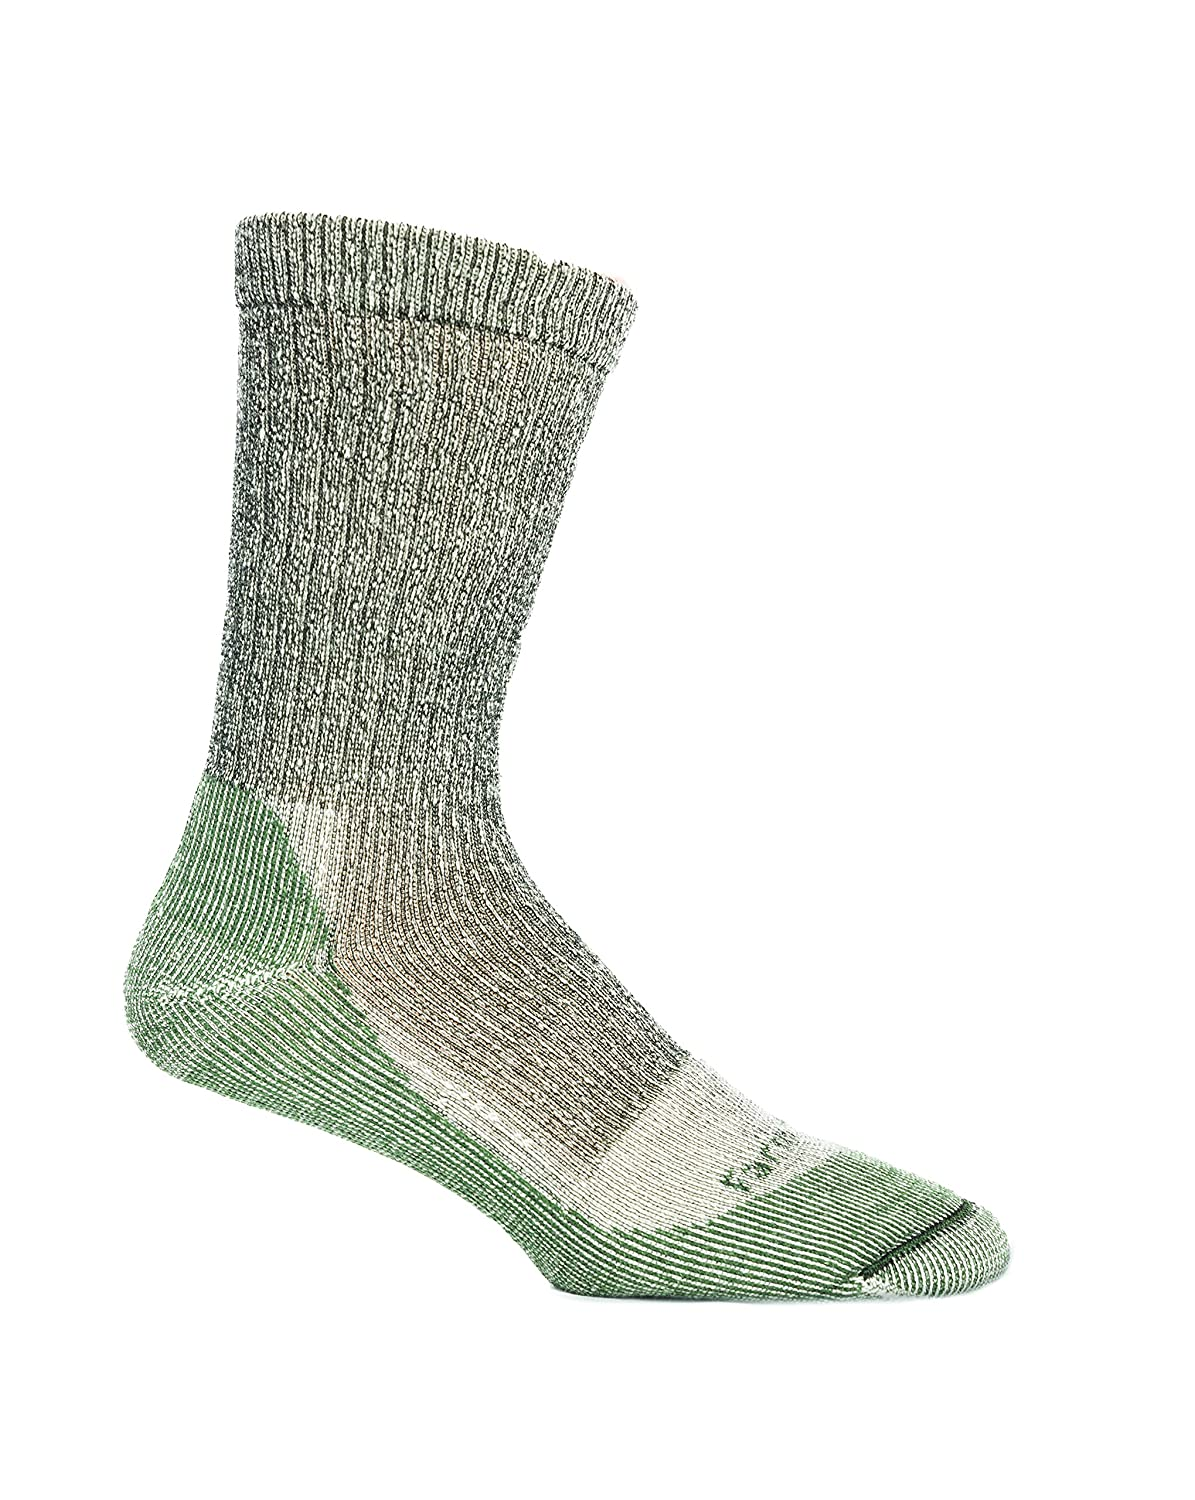 Lightweight comes with a Helicase sock ring Farm 2 Feet Boulder Crew